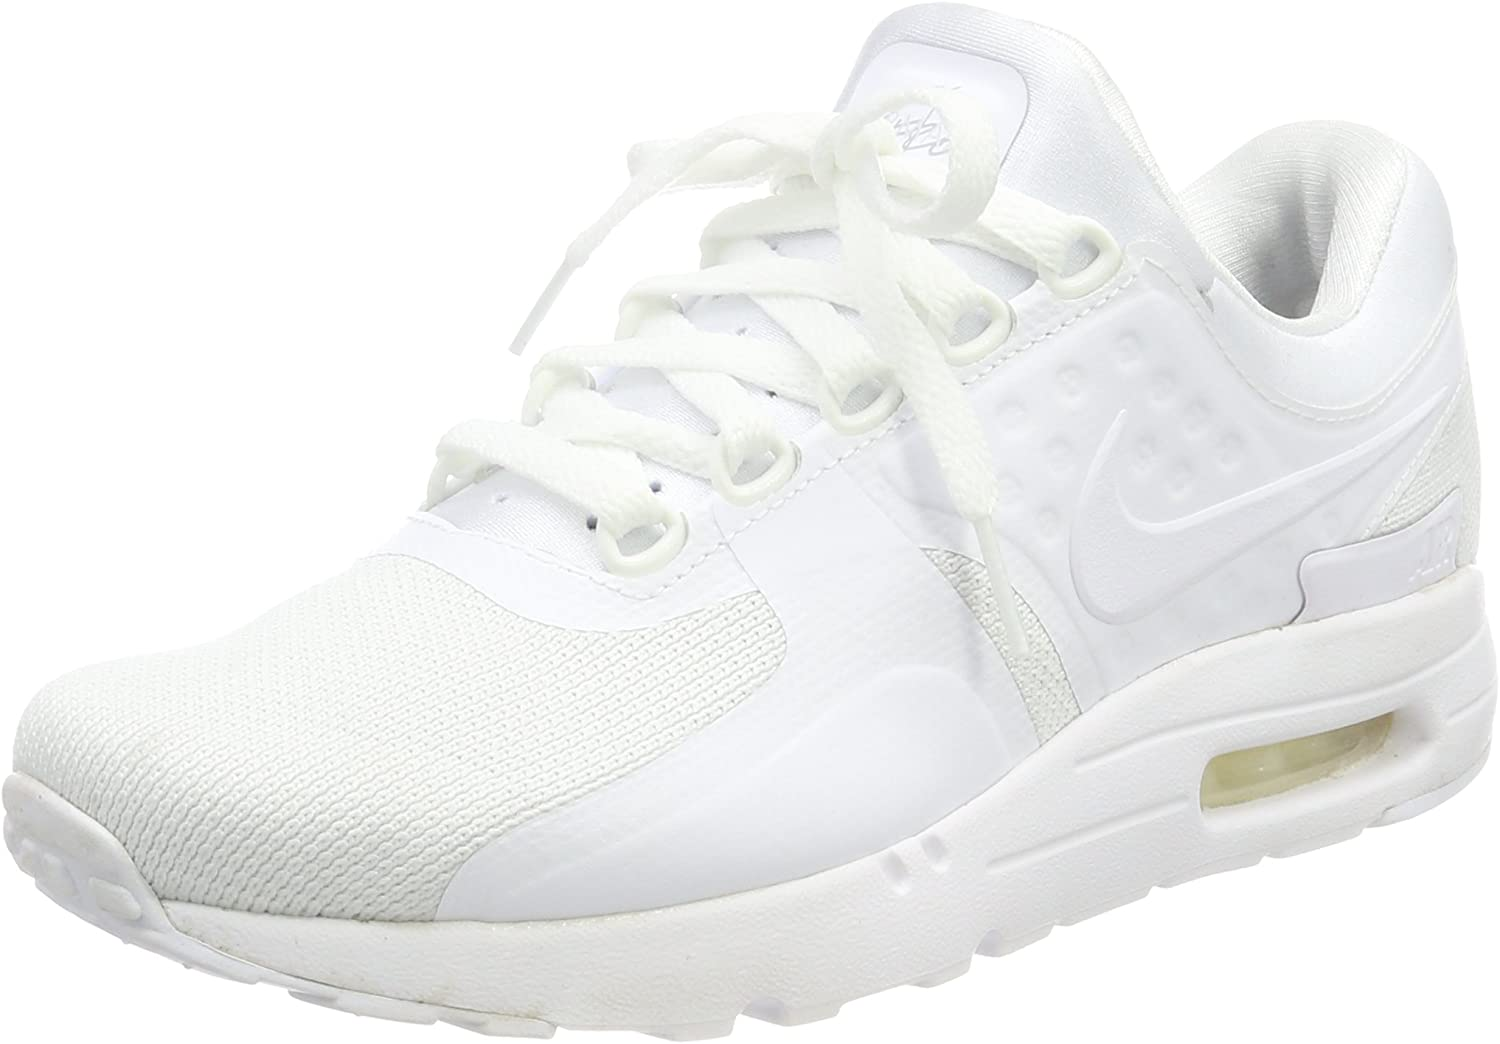 Nike Men's Air Max BR New York Mall Outlet SALE Zero Shoe Running